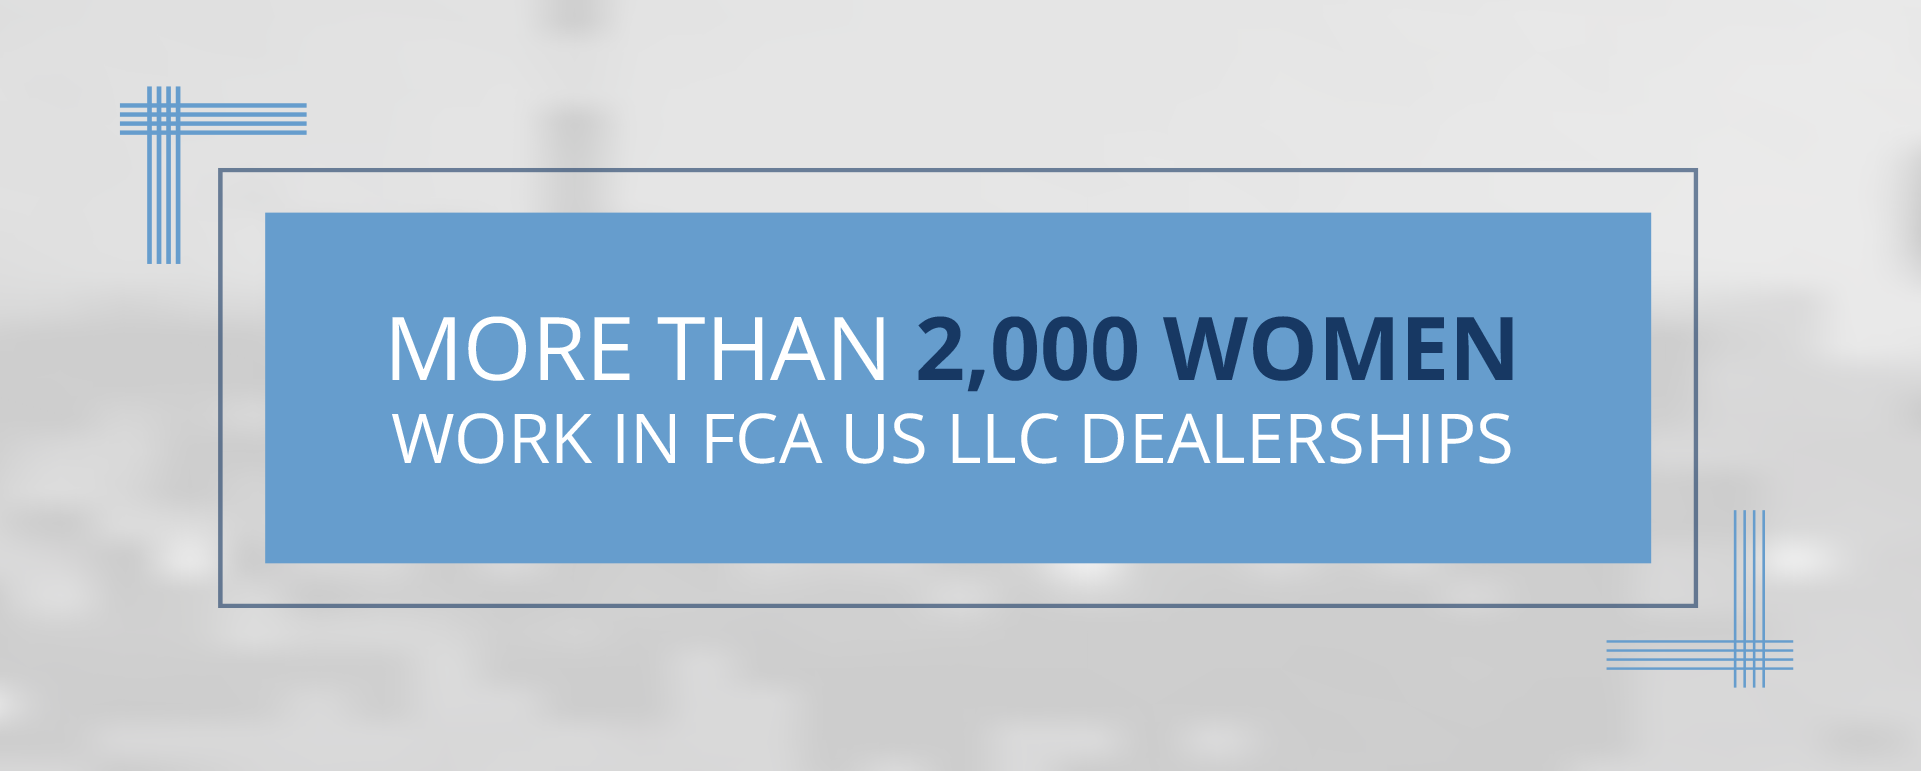 More than 2000 women work in FCA dealerships